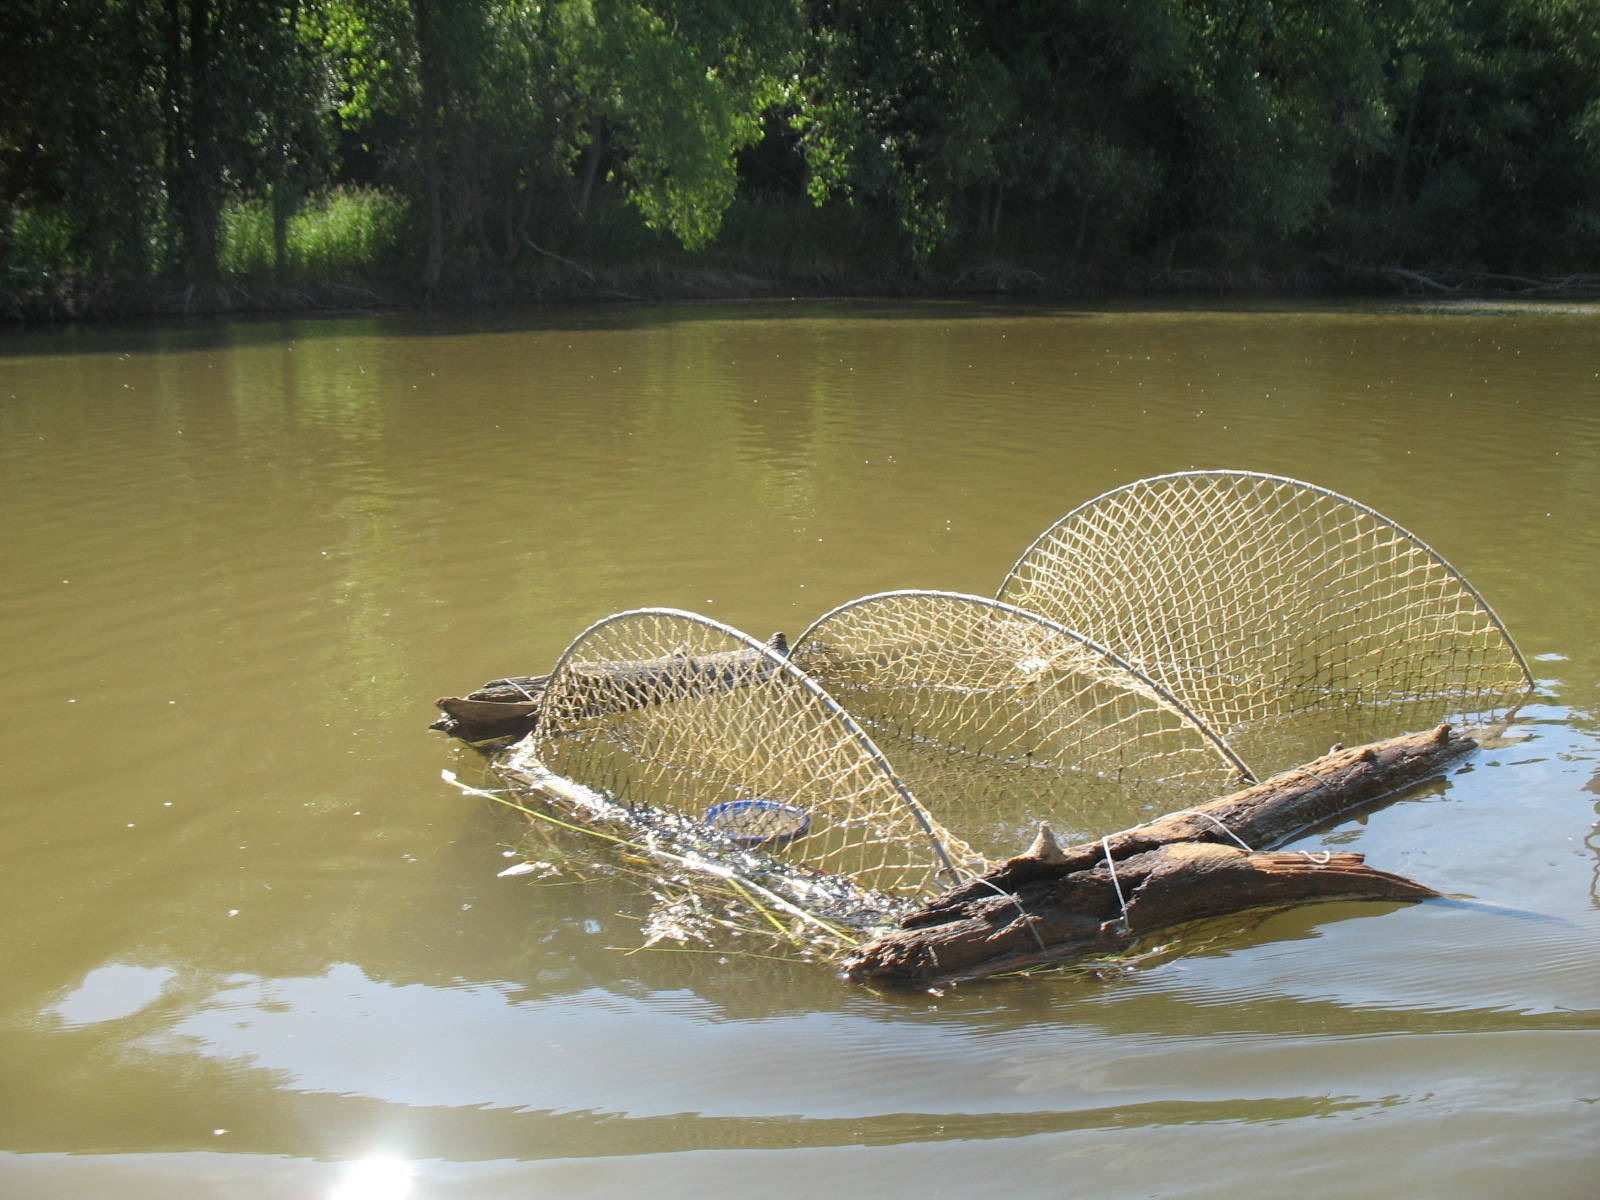 Turtle nets baited in the water